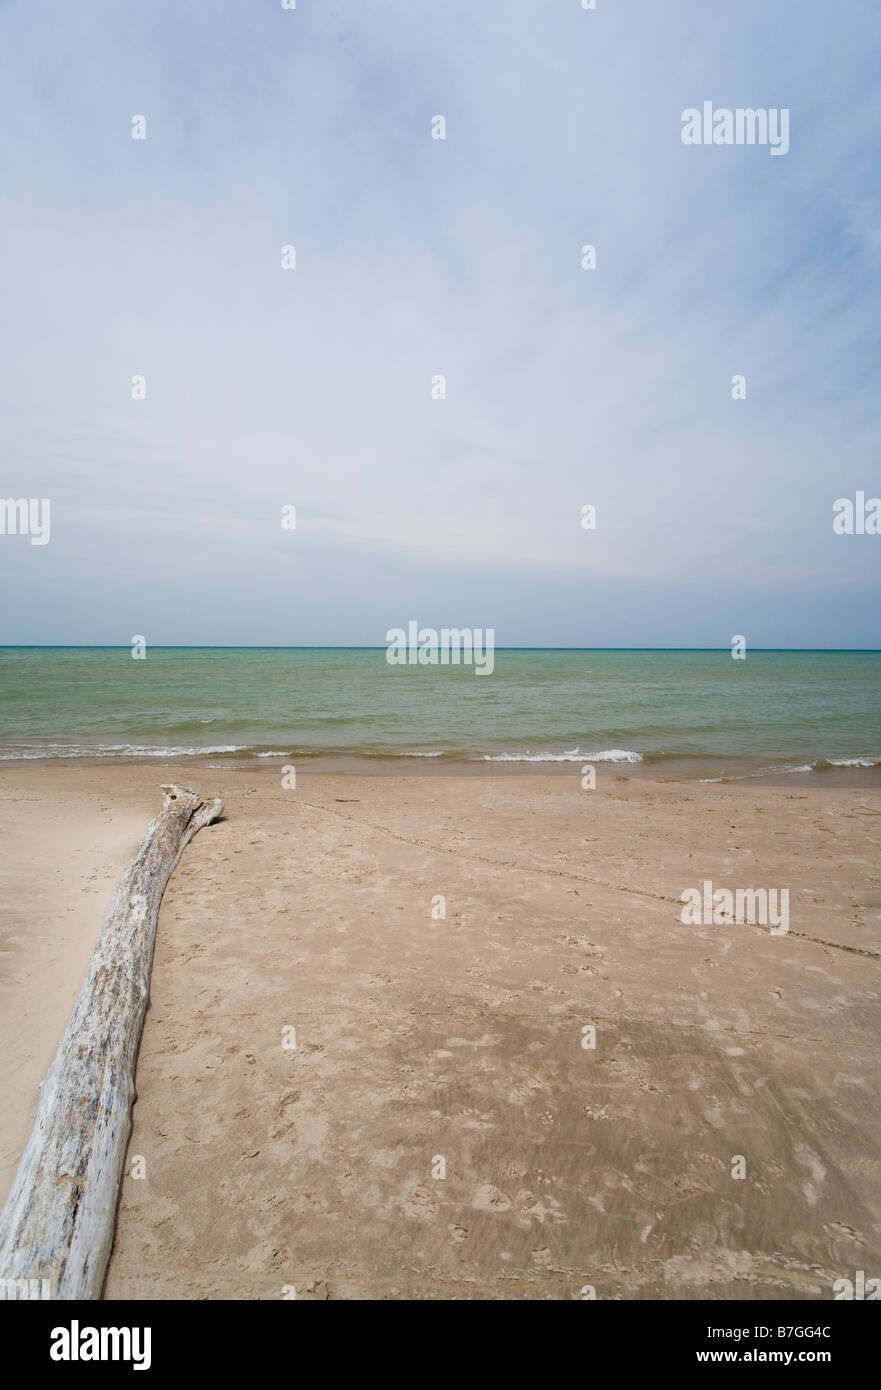 Beach Driftwood Water and Sky: The flat beach at the park dominated by a large sky over lake Huron Stock Photo